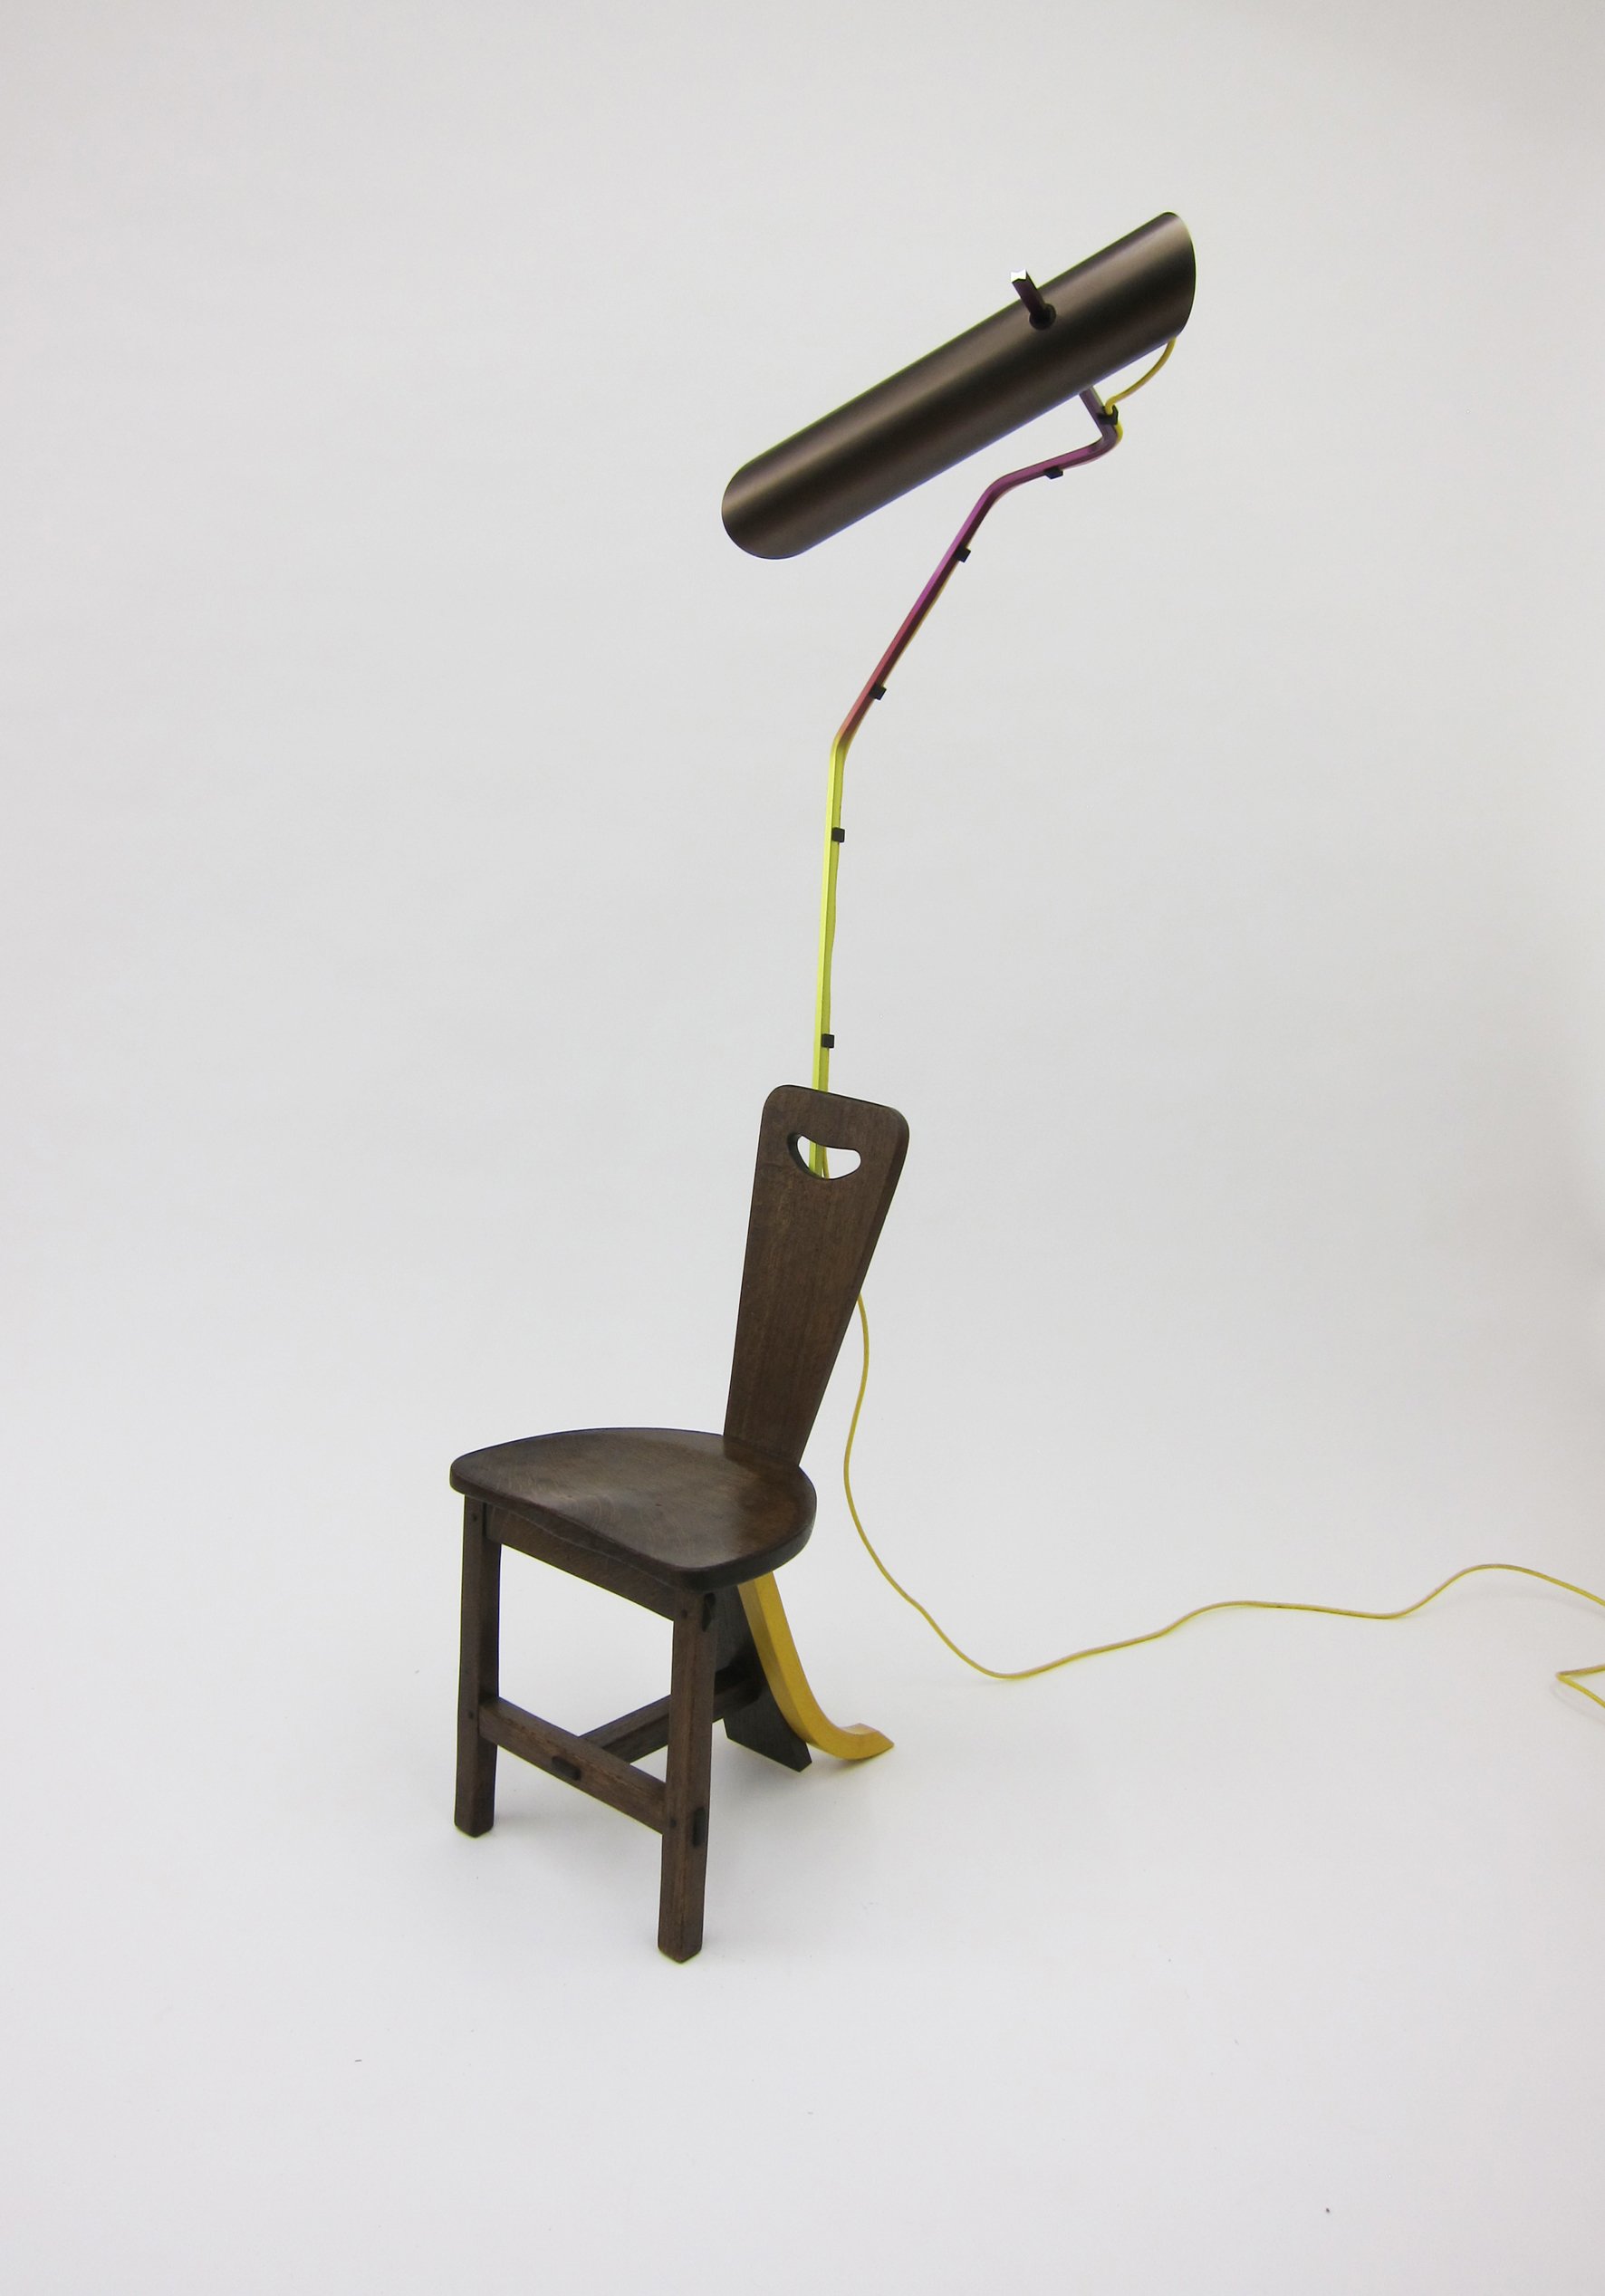 Composizioni with reading chair, appropriated chair, extruded aluminium light, 171 x 50 x 65 cm